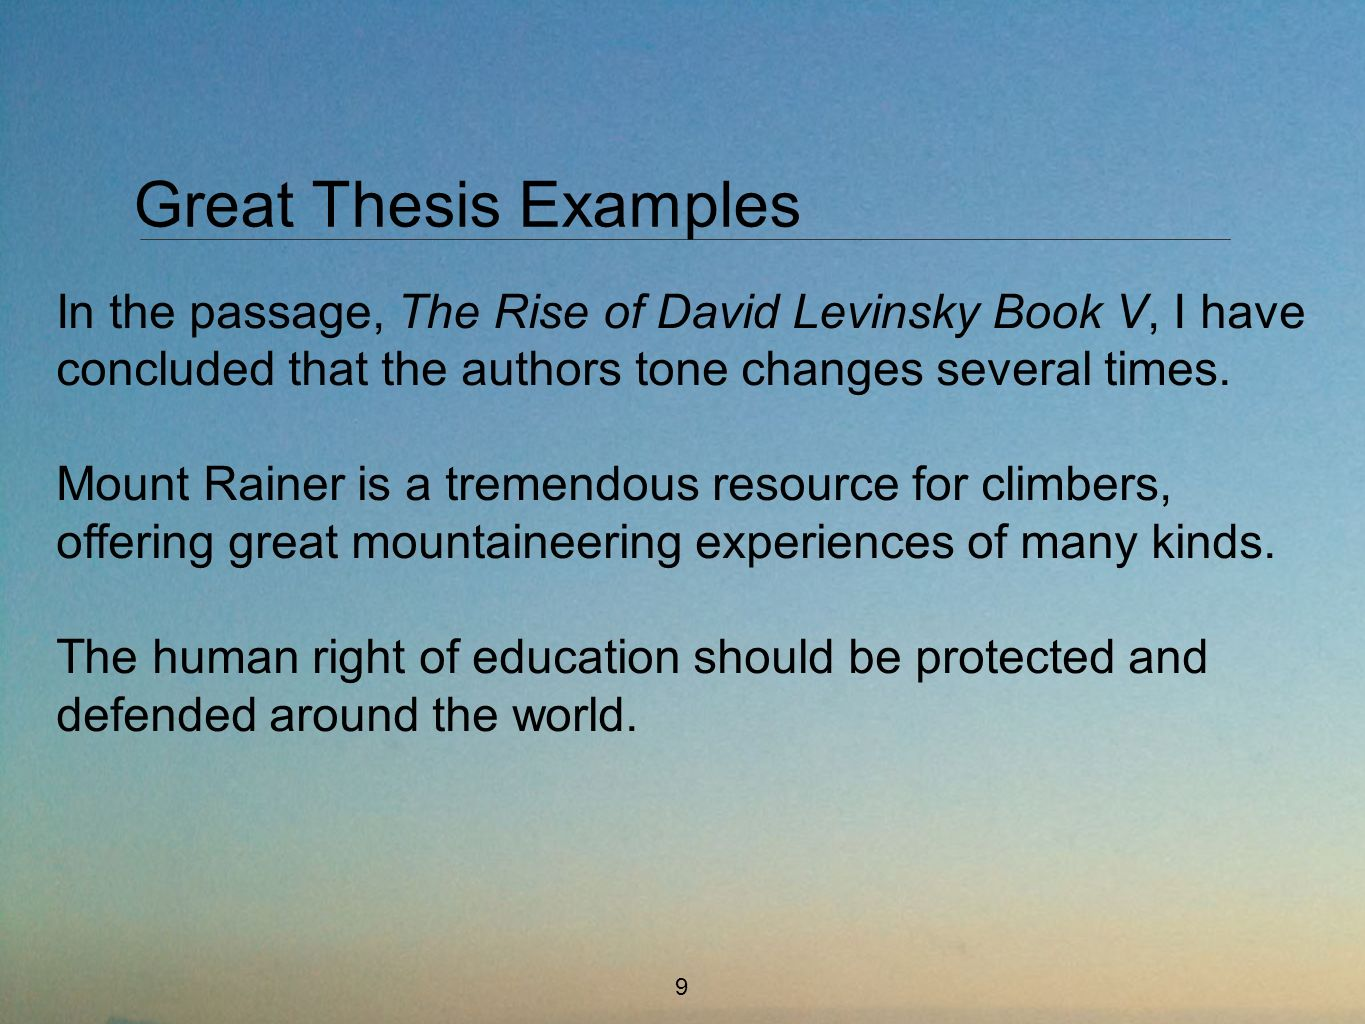 a great thesis